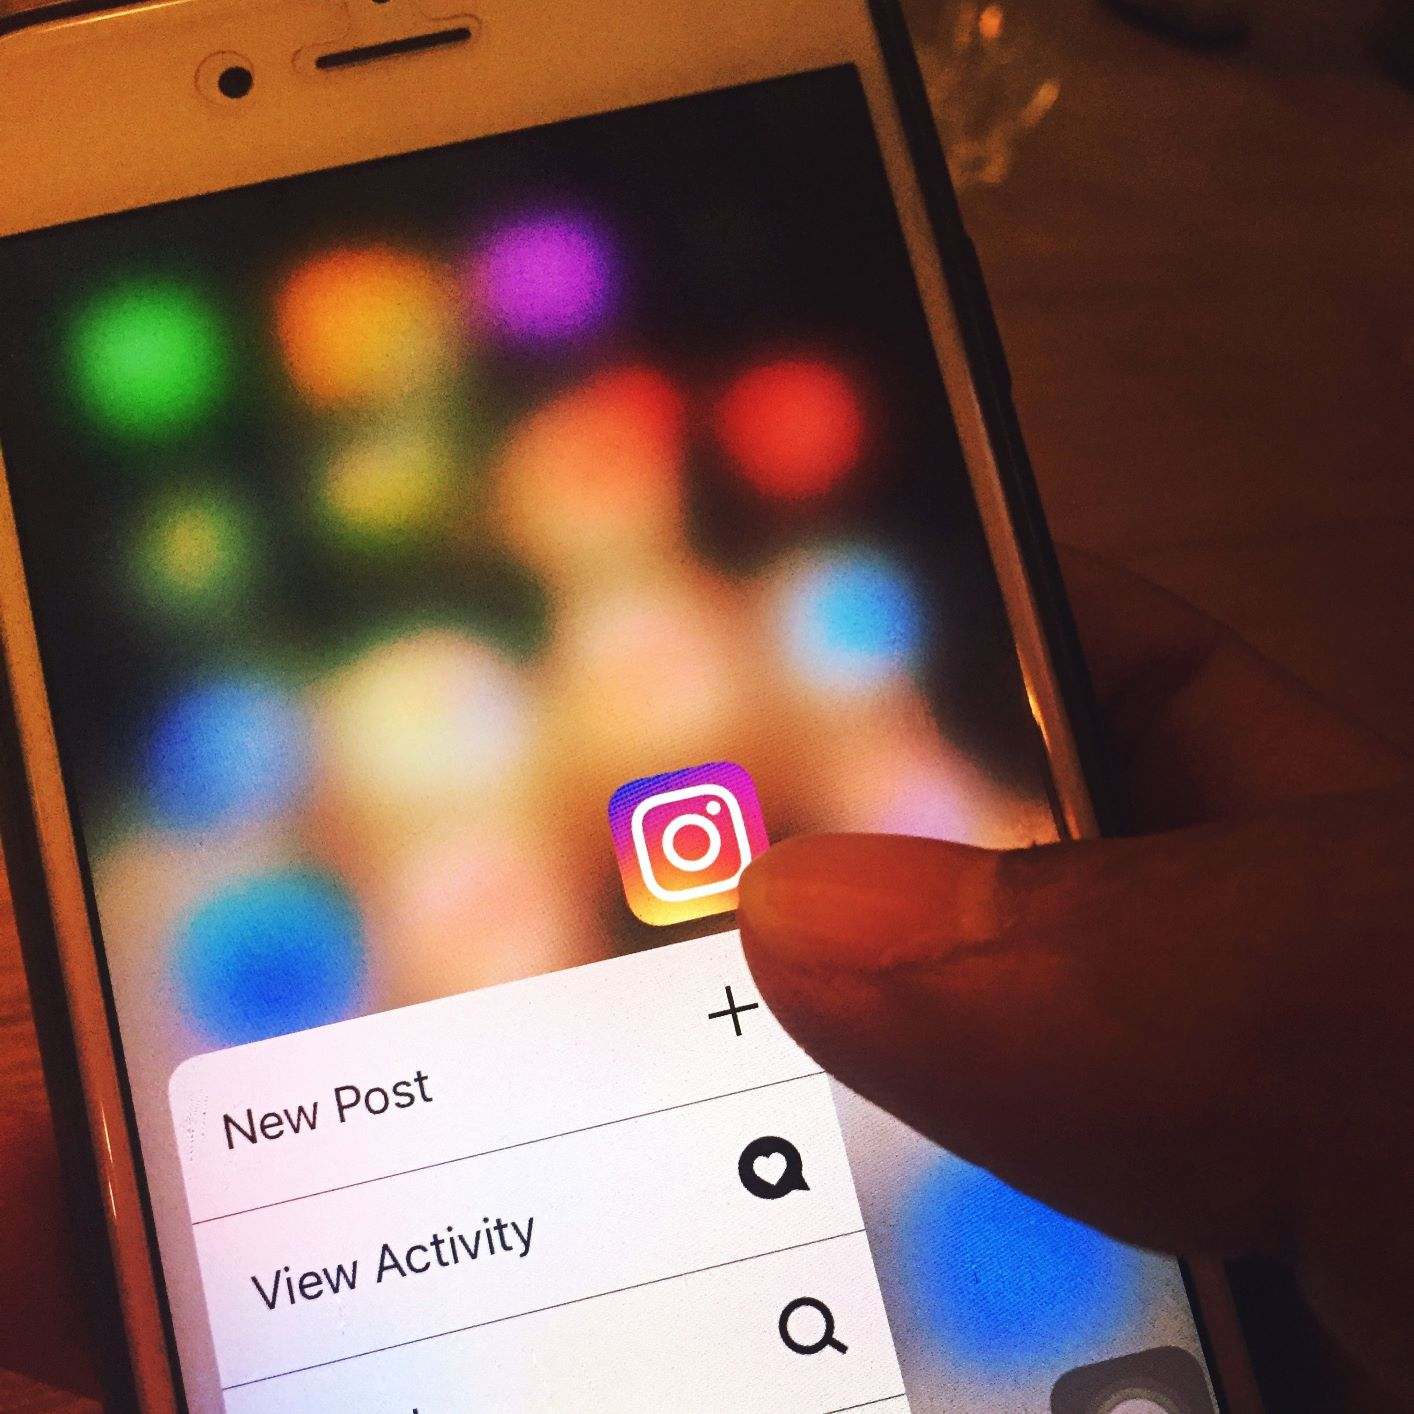 Instagram networking event in Dubai